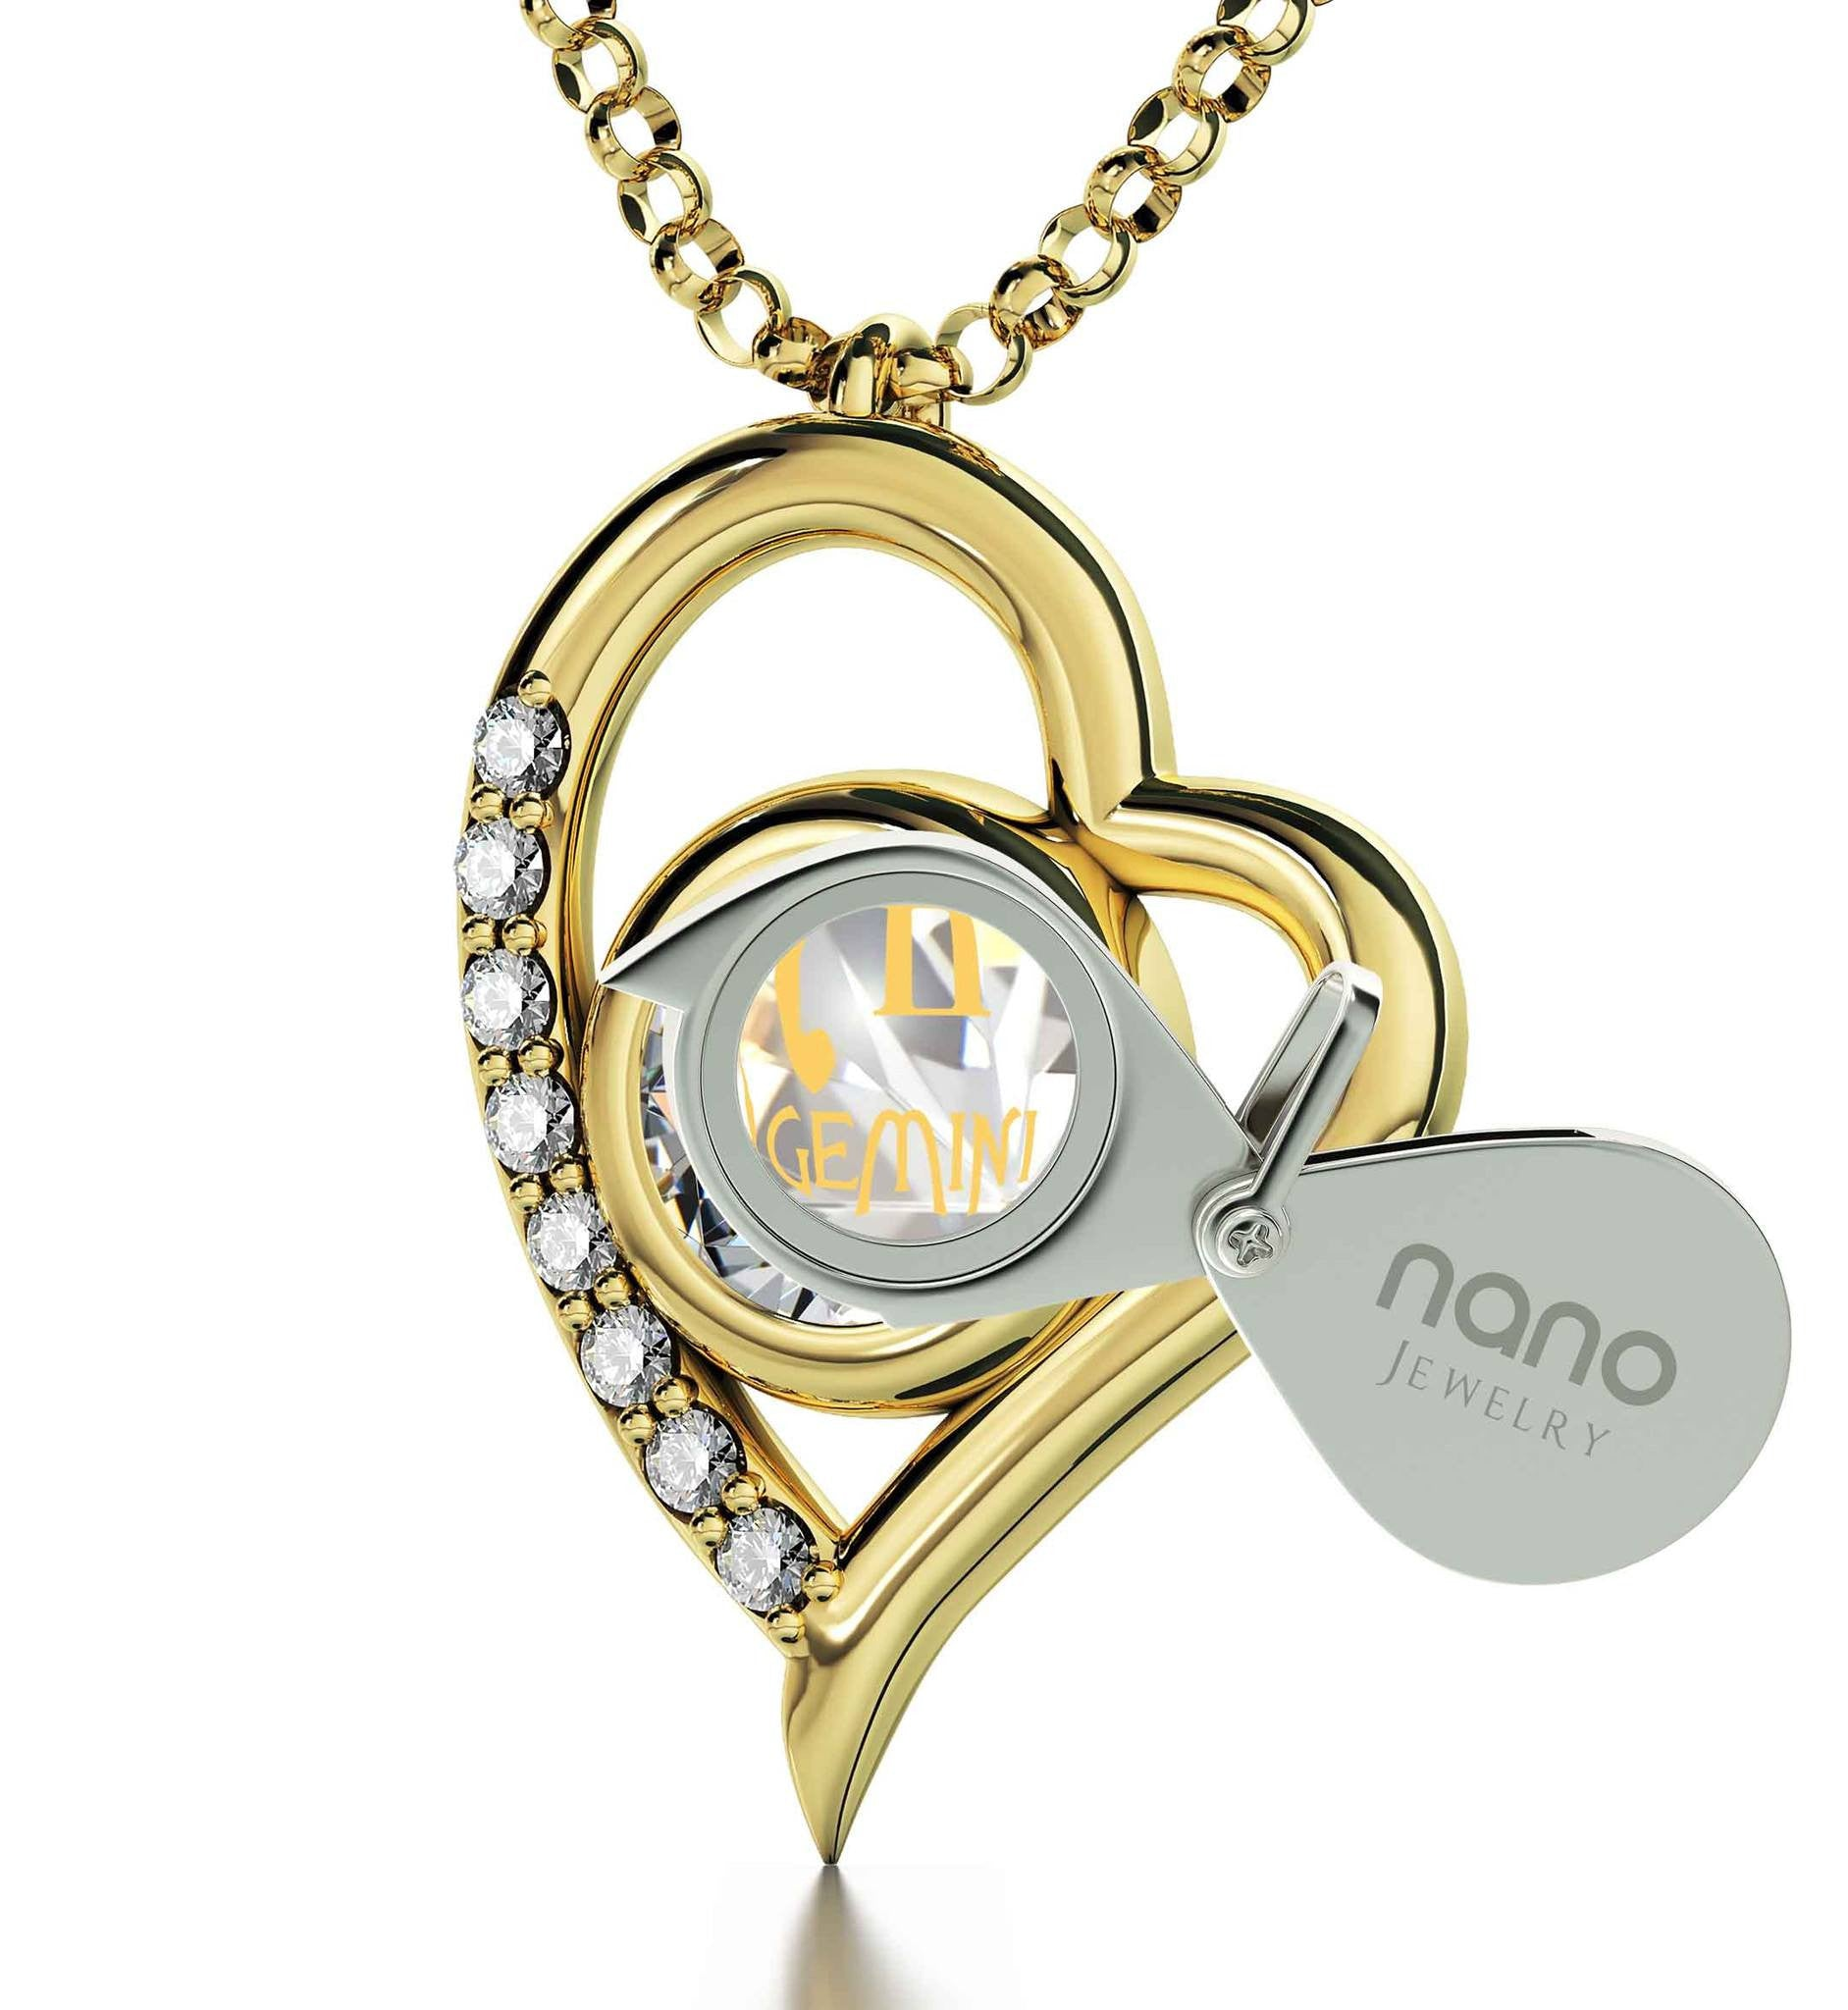 diamonds coin item gold chain custom no franco necklace real pendant watch